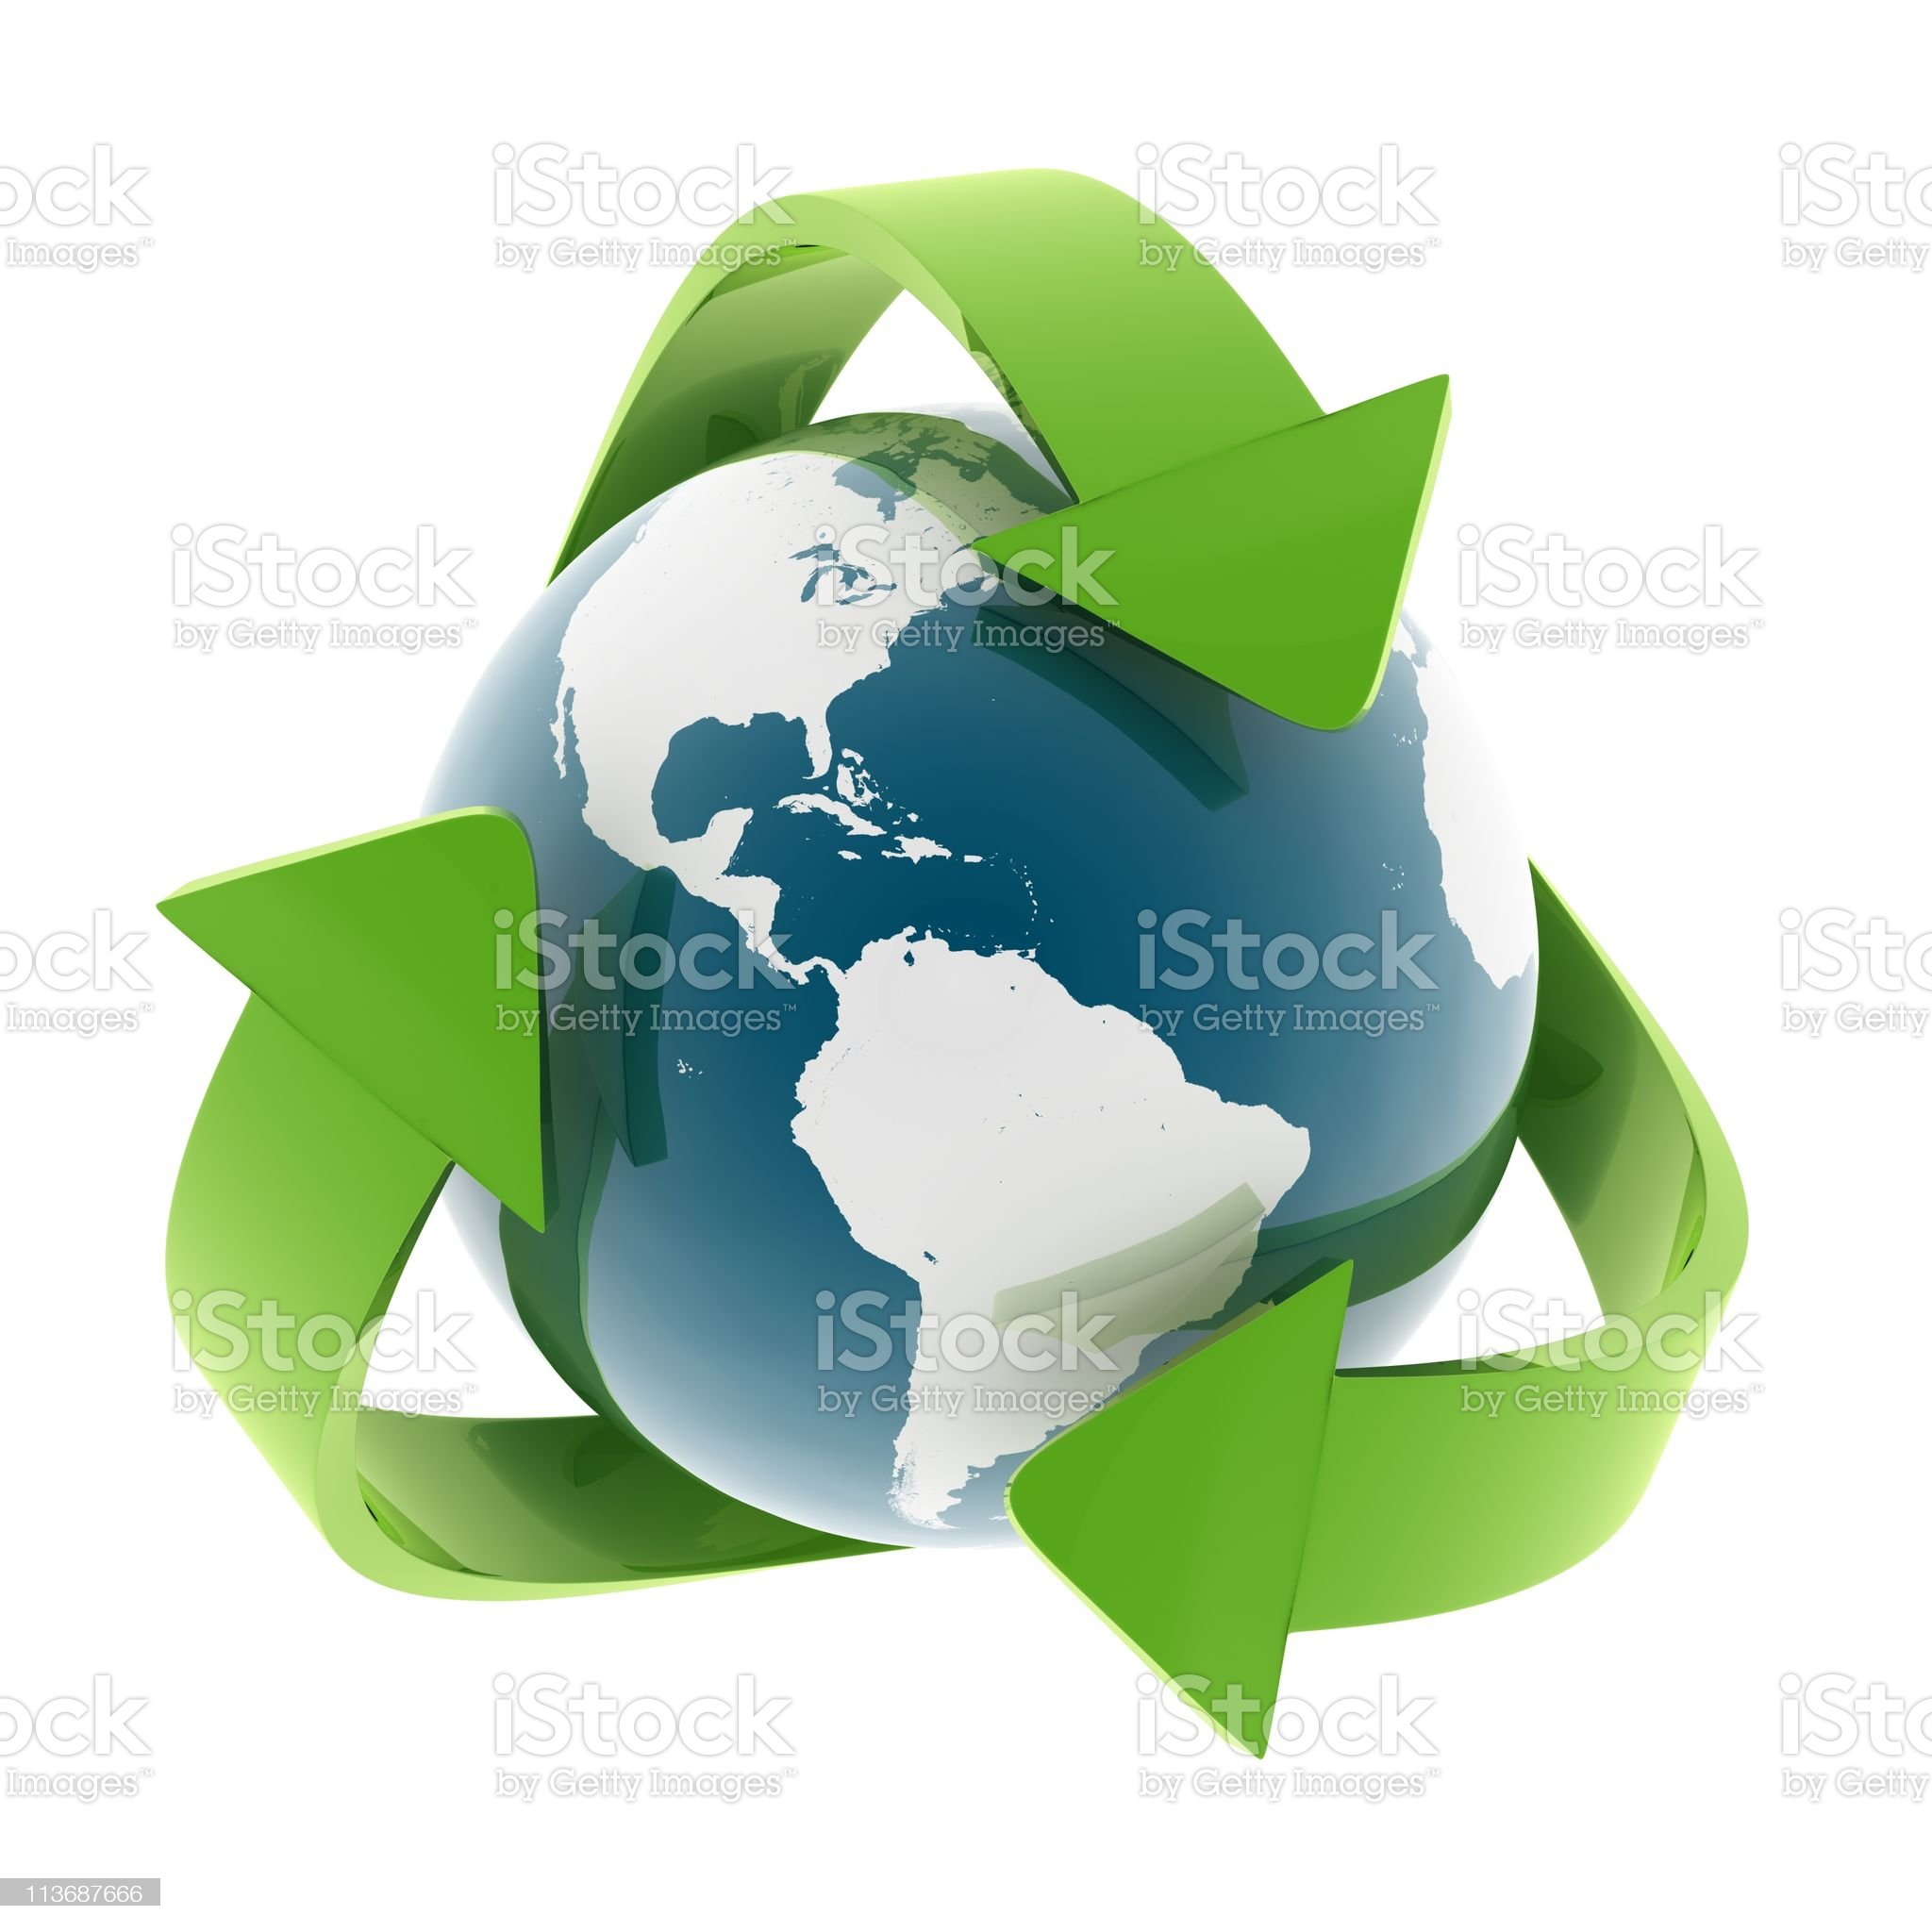 Recycling World royalty-free stock photo